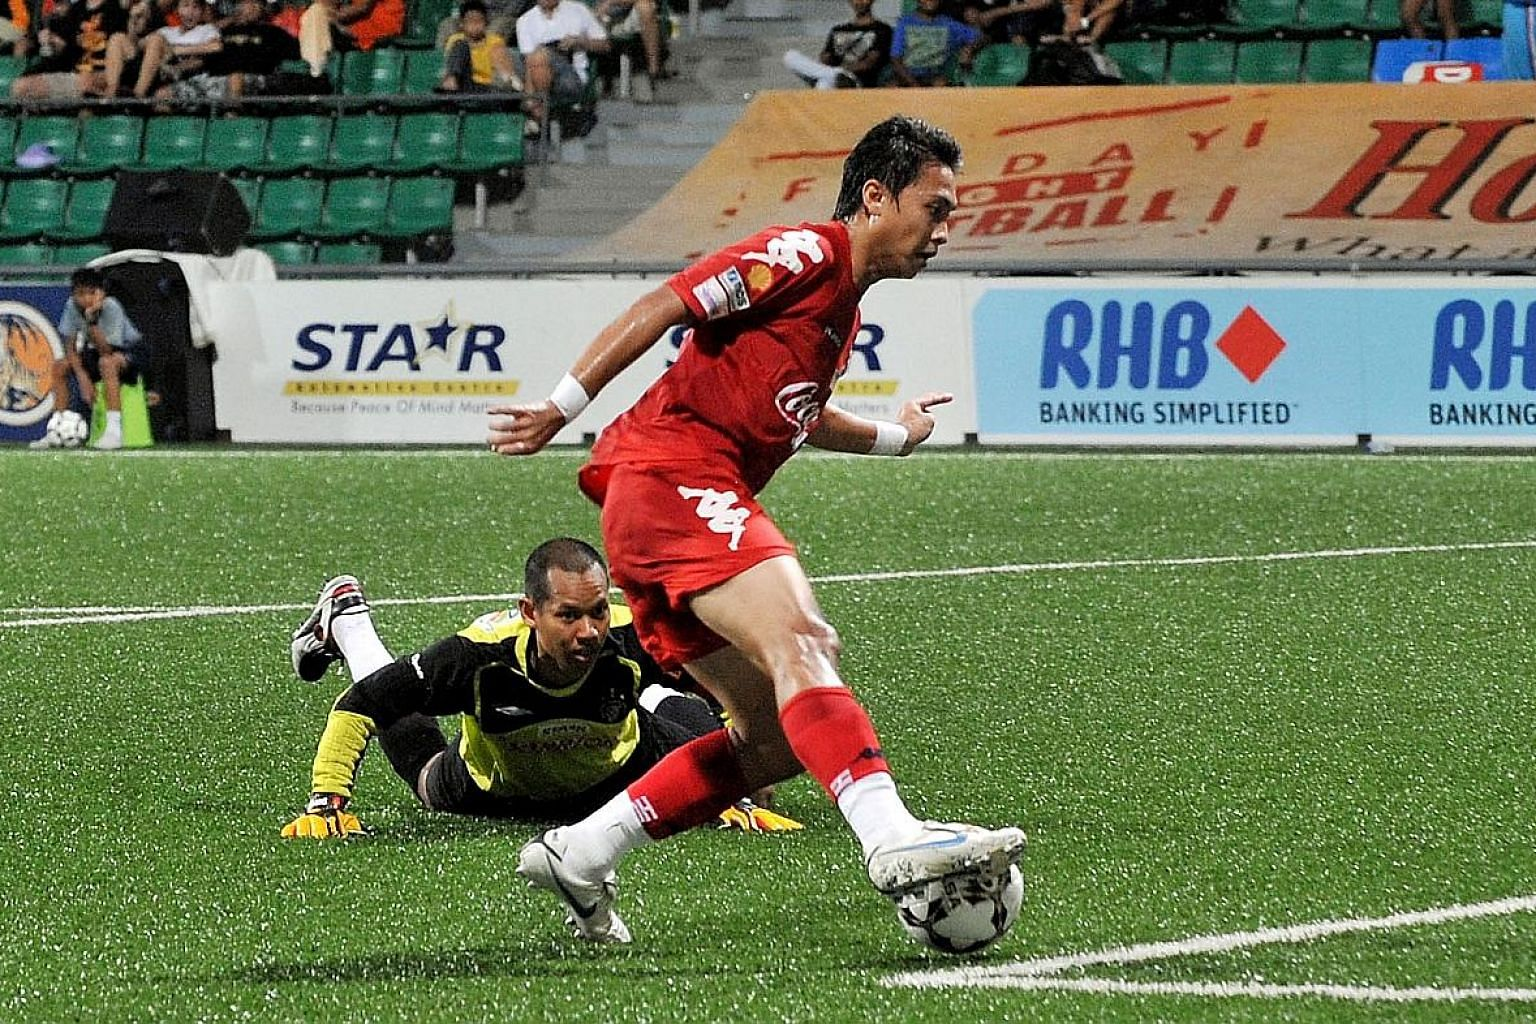 Top left: Shahril Ishak rounding SAFFC goalkeeper Shahril Jantan en route to netting the second goal of his hat-trick for Home United in their S-League match in 2010. Above: The iconic bicycle kick of V. Sundram Moorthy in 1993 which helped Singapore